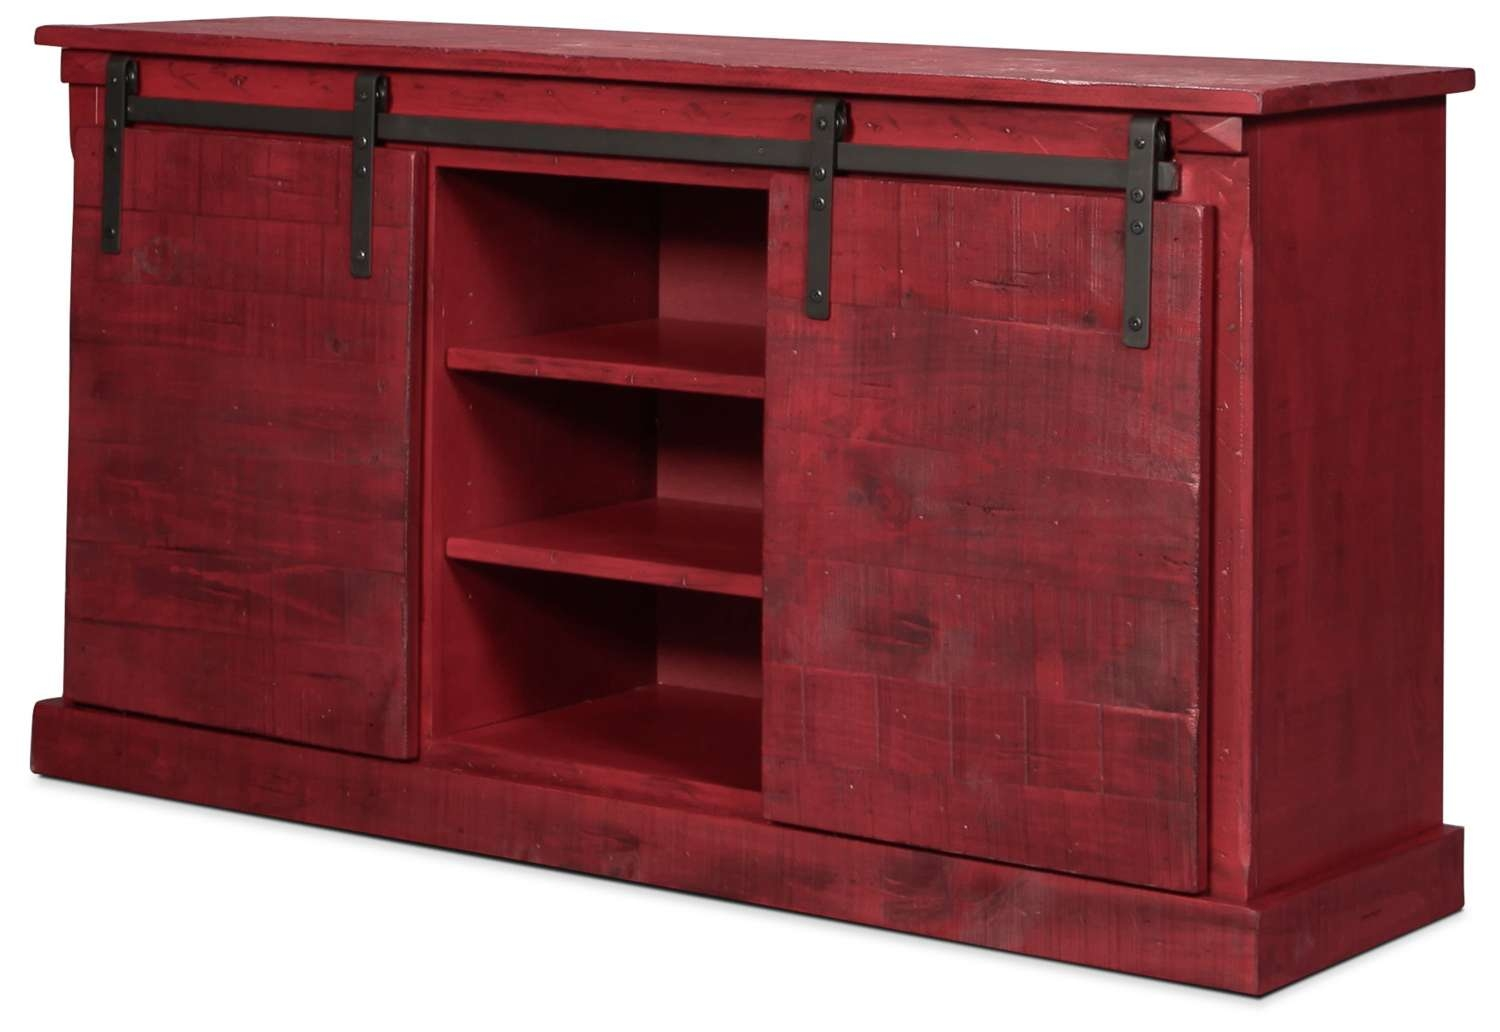 Sweet Techlink Opod Opr Tv Stand Gloss Red Tvs Up To Retro Chrome Intended For Red Tv Stands (View 13 of 15)